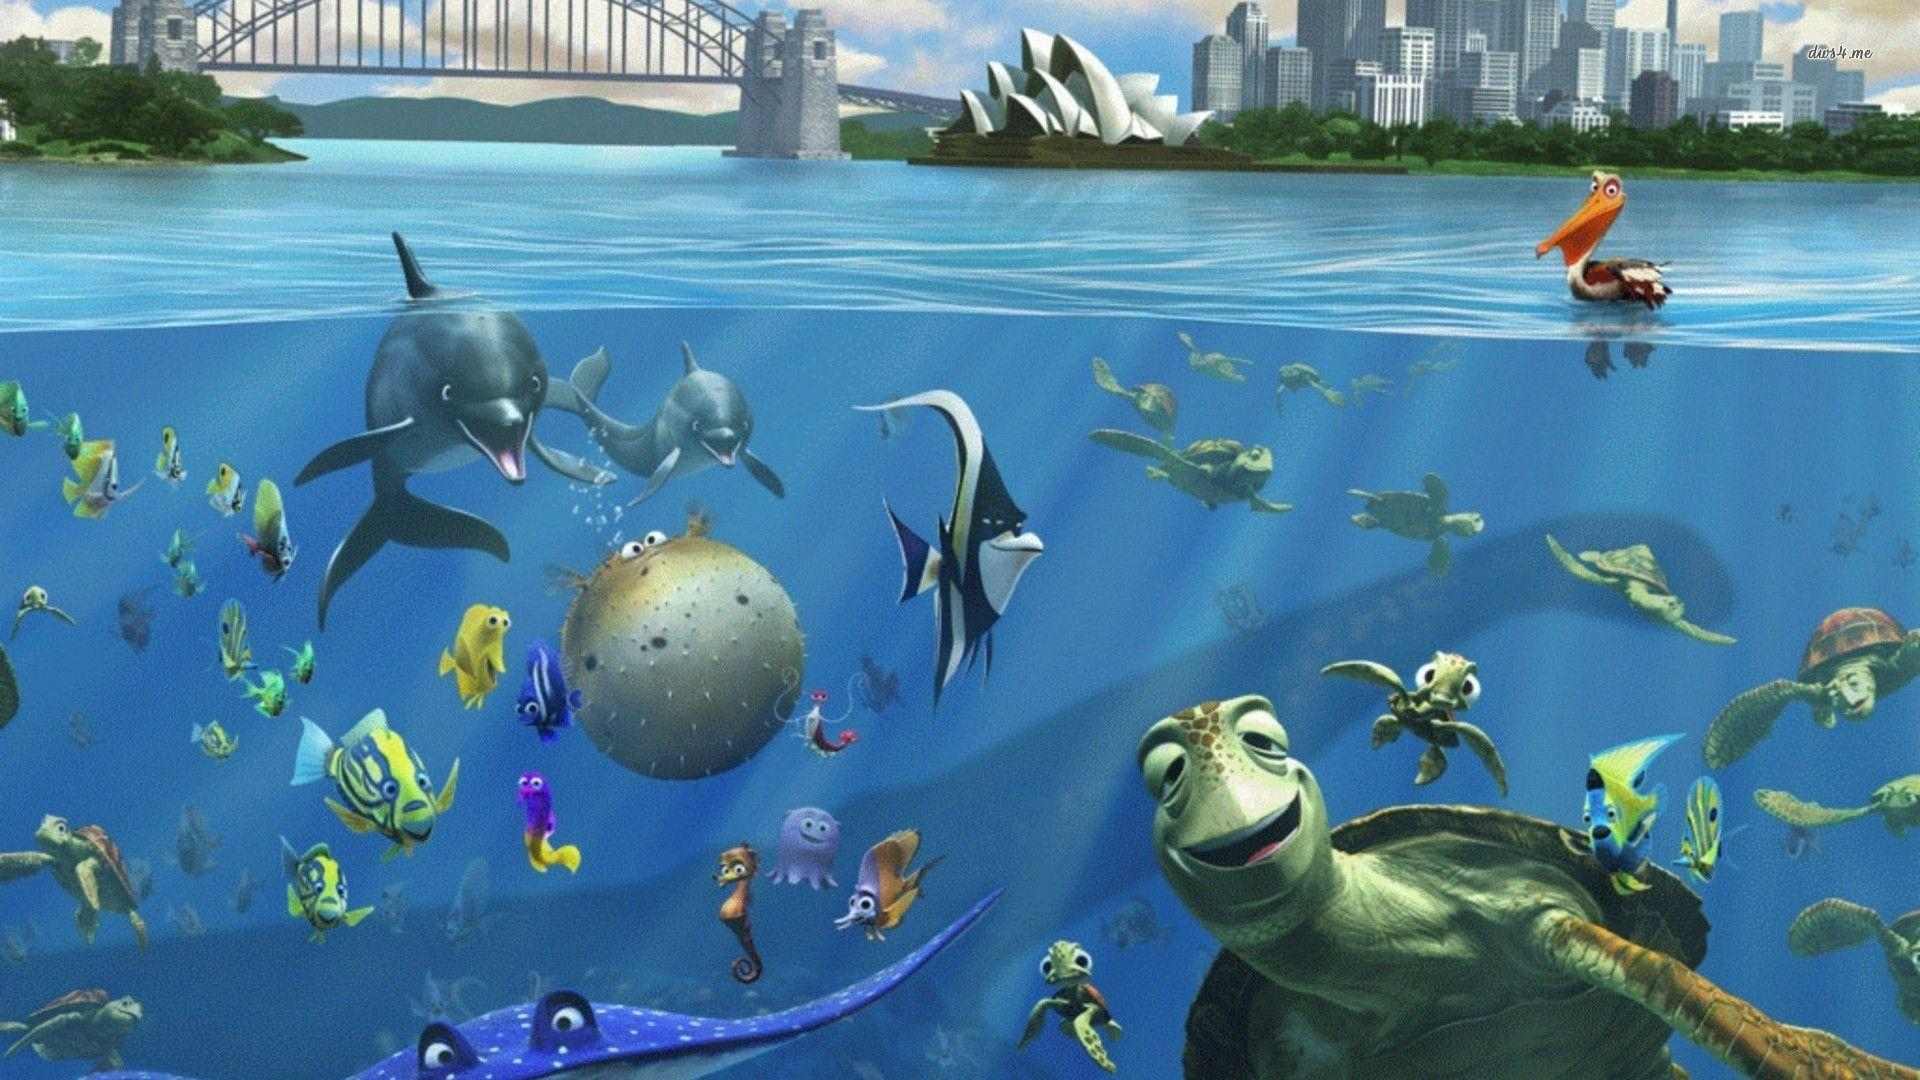 Finding Nemo 3D Wallpapers Download Free